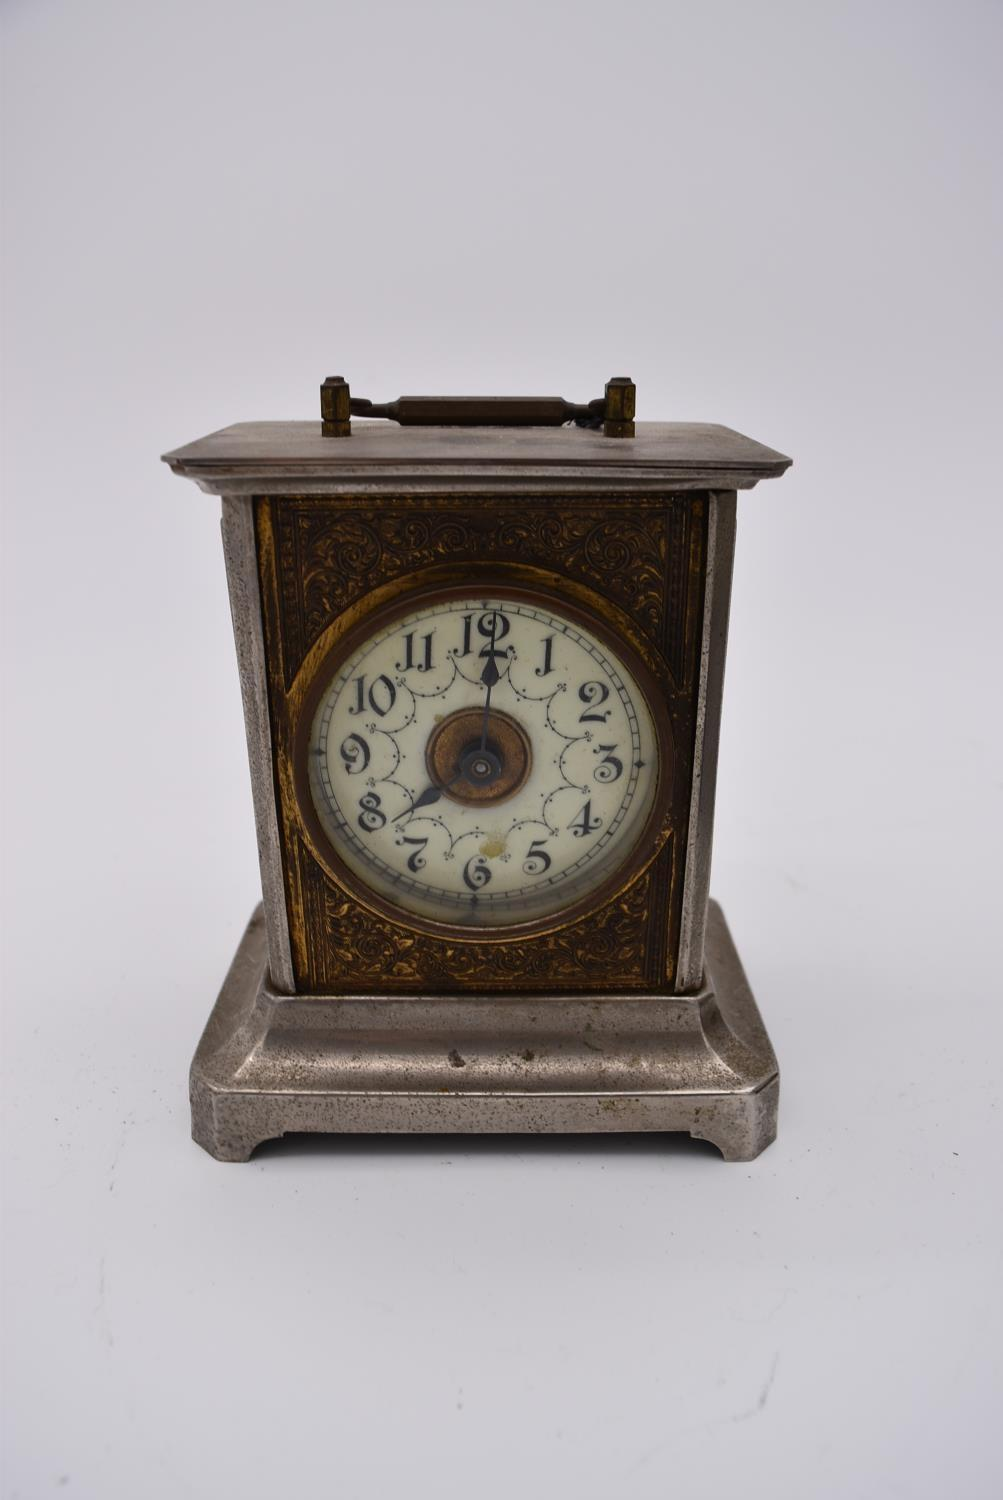 A brass cased carriage clock with engraved brass front with scrolling design and white enamel dial - Image 2 of 8